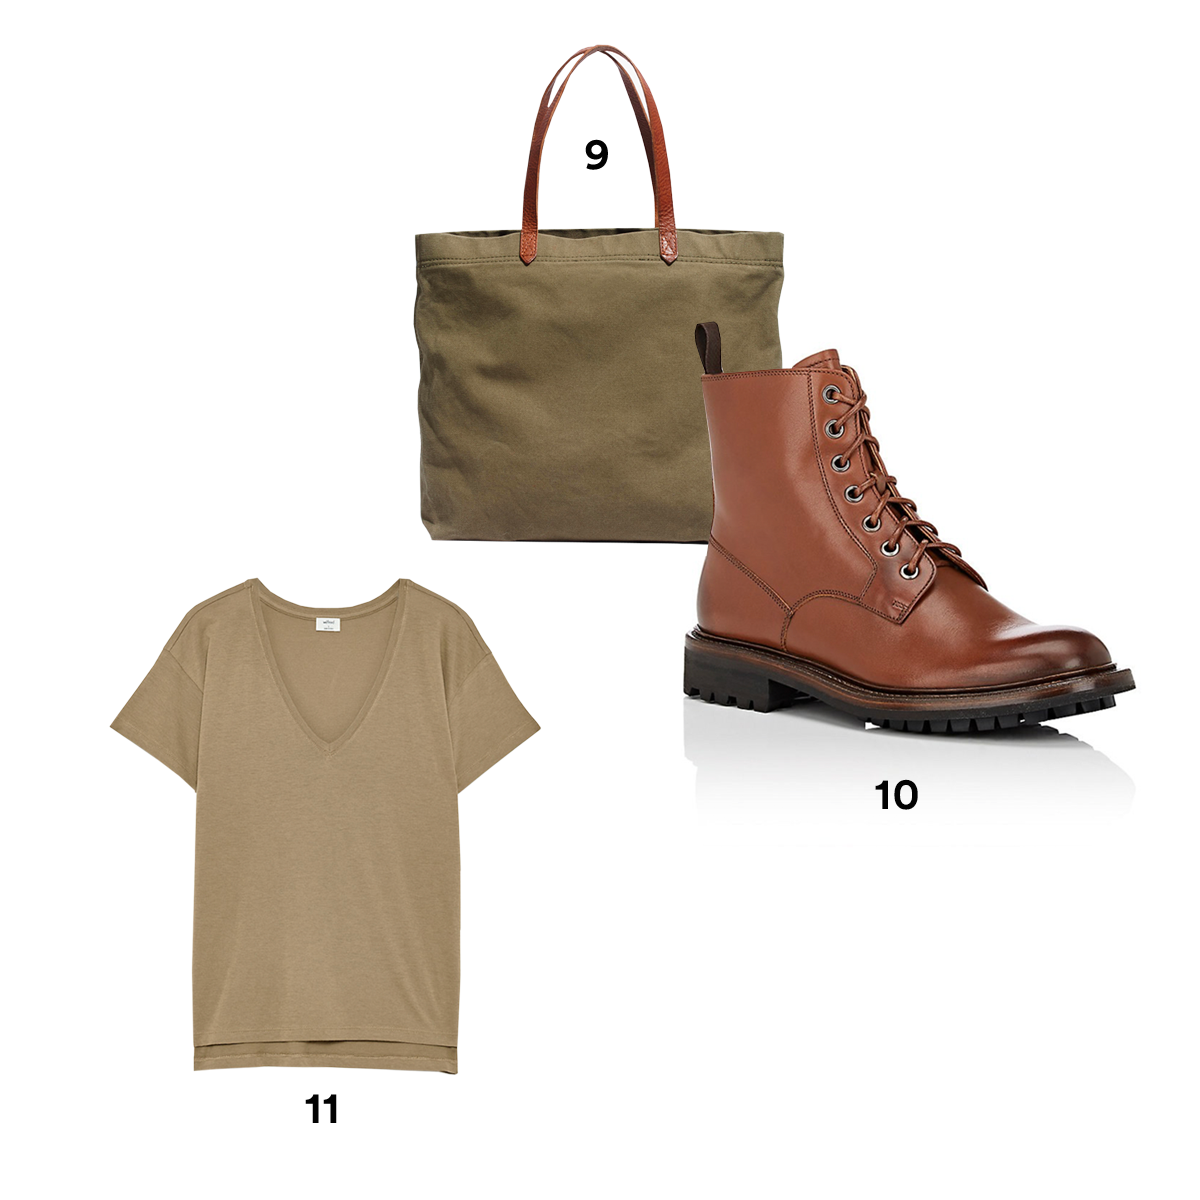 9.) MADEWELL The Canvas Transport Tote. 10.) CHURCH'S Nanalah Leather Ankle Boots, available at Barneys New York. 11.) WILFRED Noemie Top, available at Aritzia.